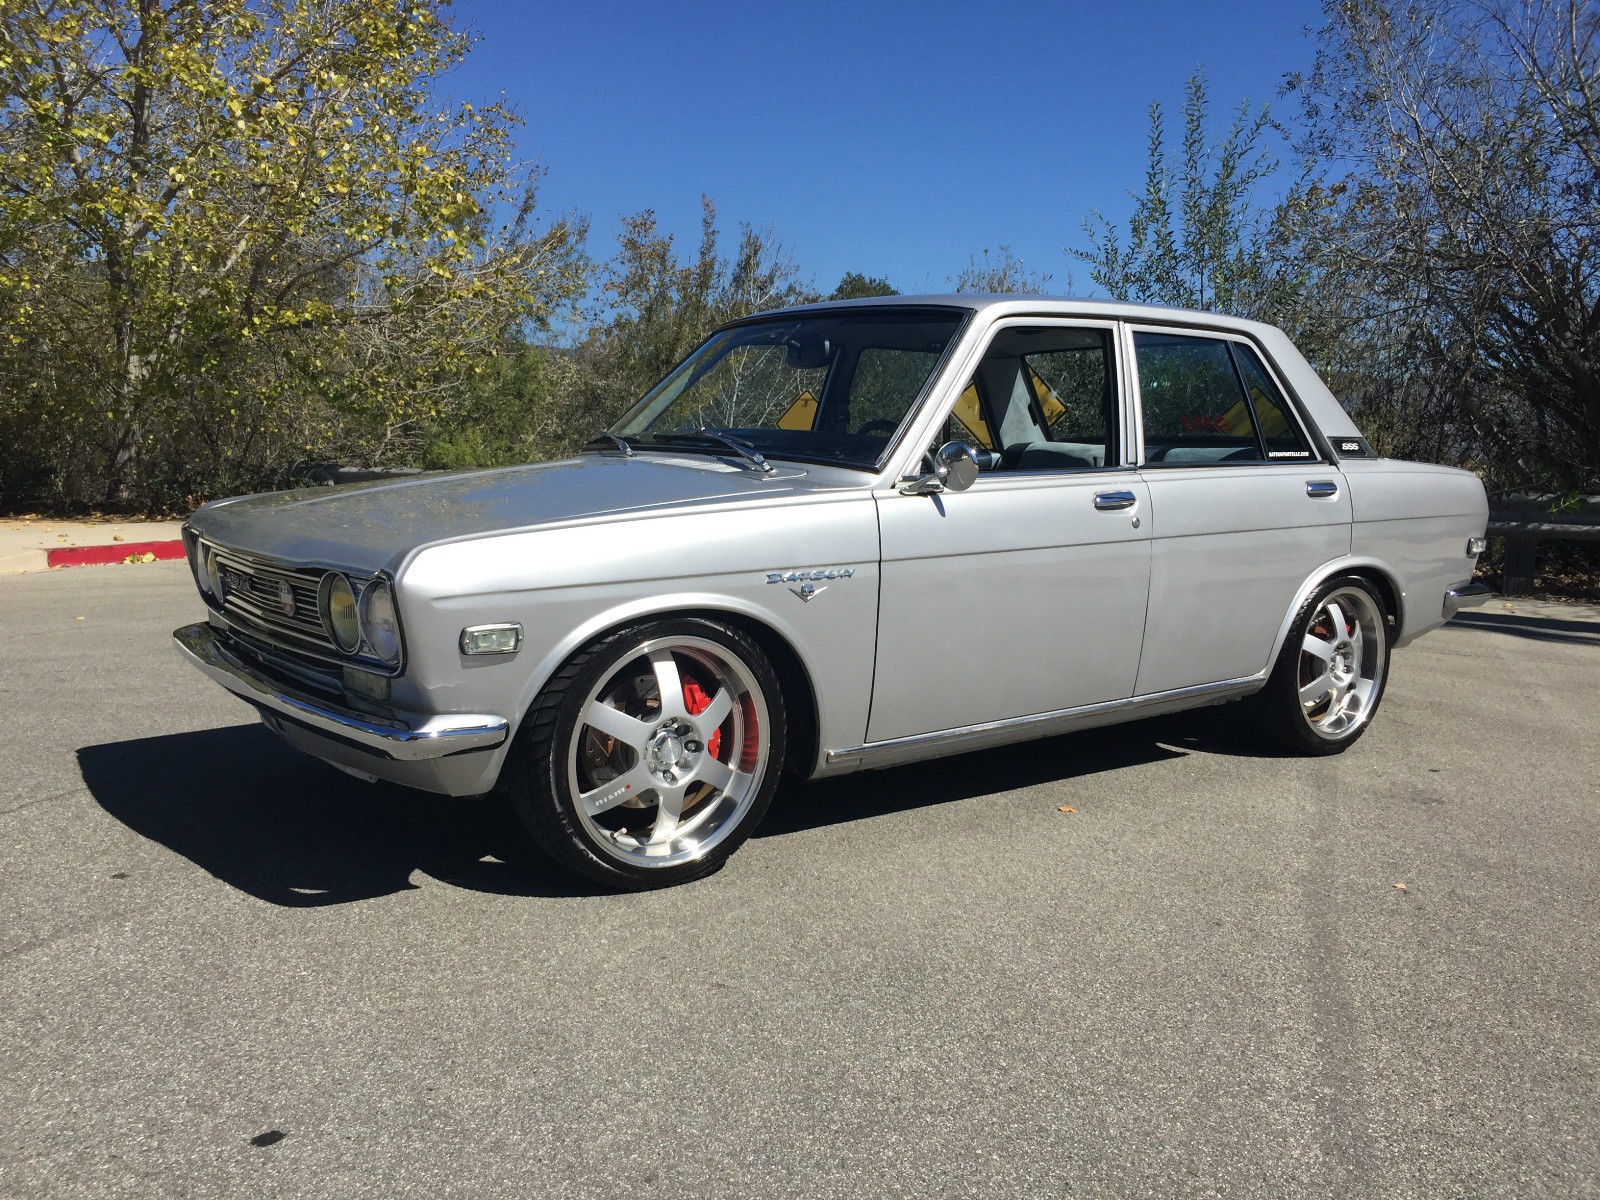 1971 datsun 510 4 door sedan for sale by owner in buellton. Black Bedroom Furniture Sets. Home Design Ideas